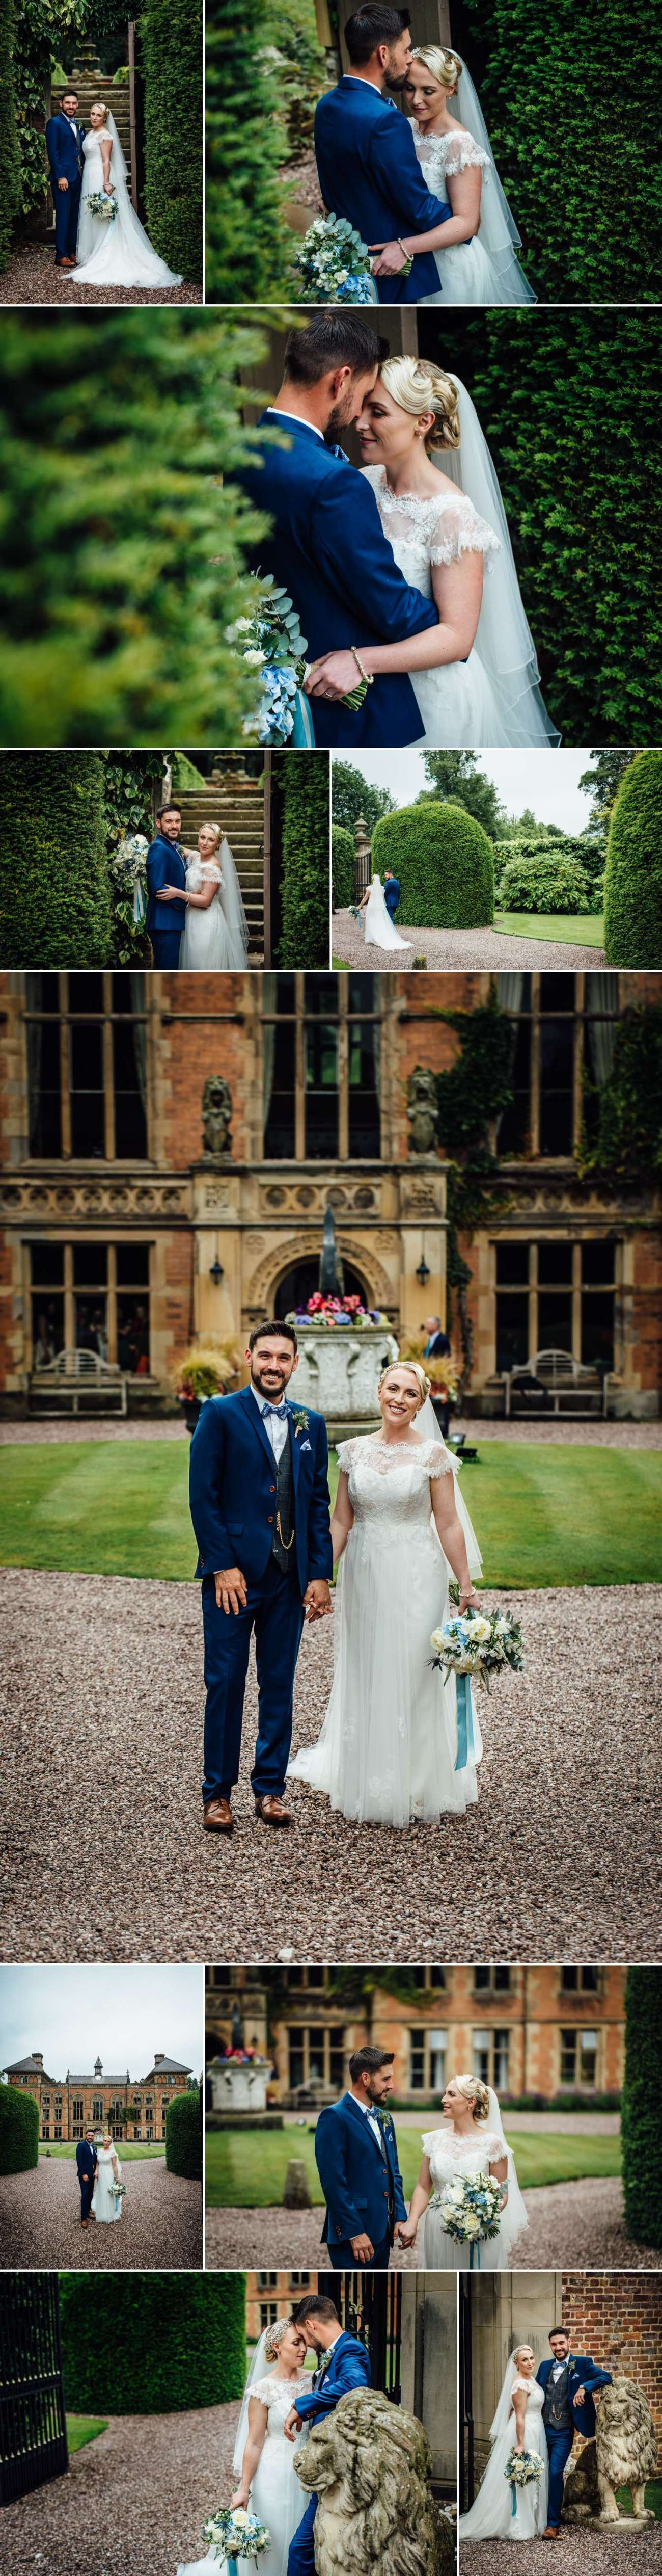 Wedding photography portraits in Soughton Hall wedding gardens